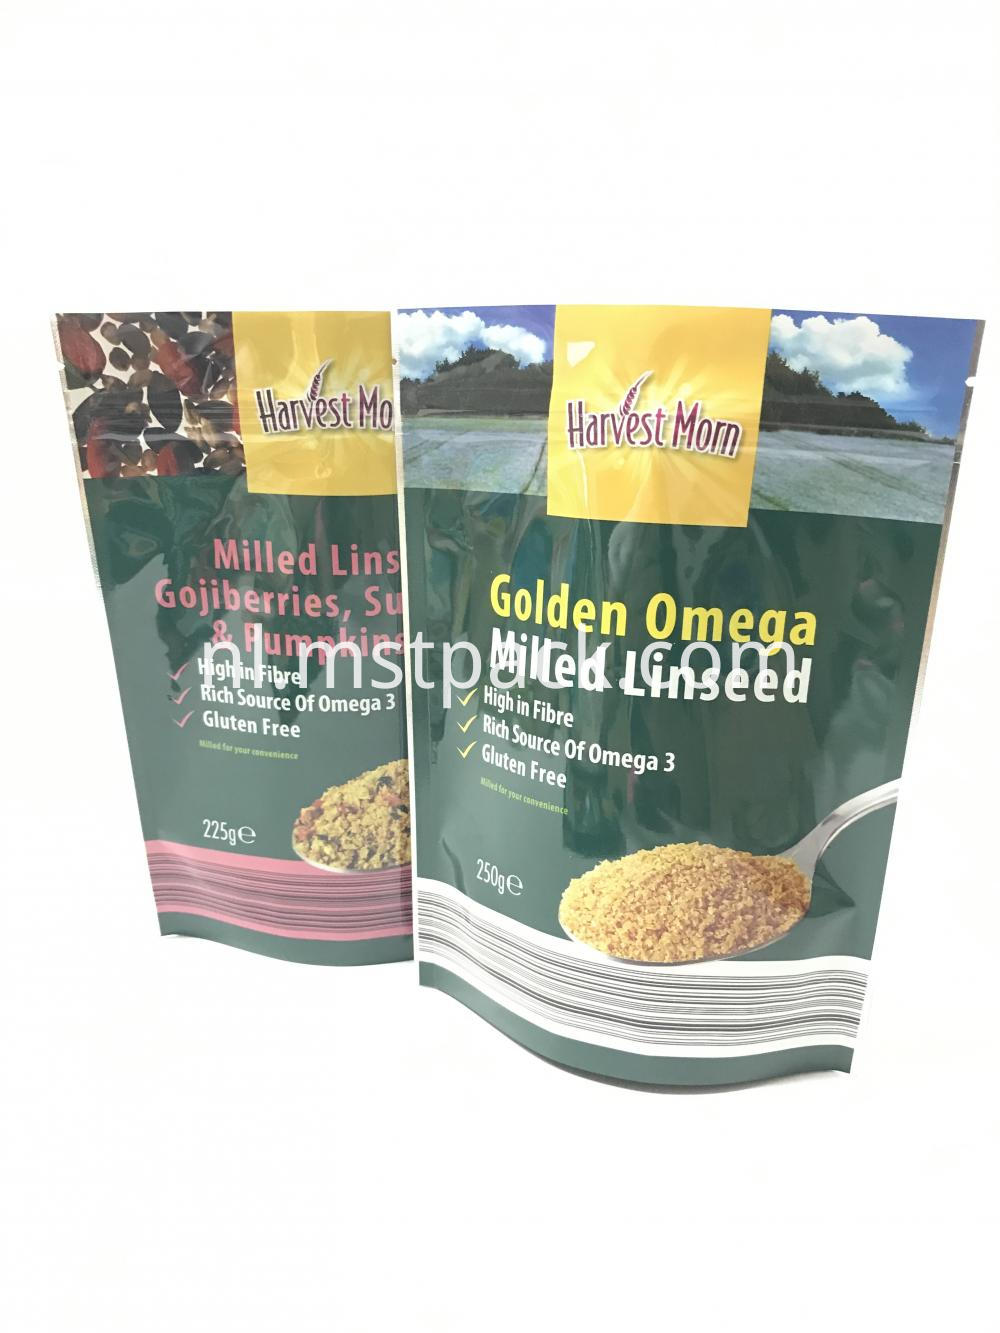 Milled Linseed